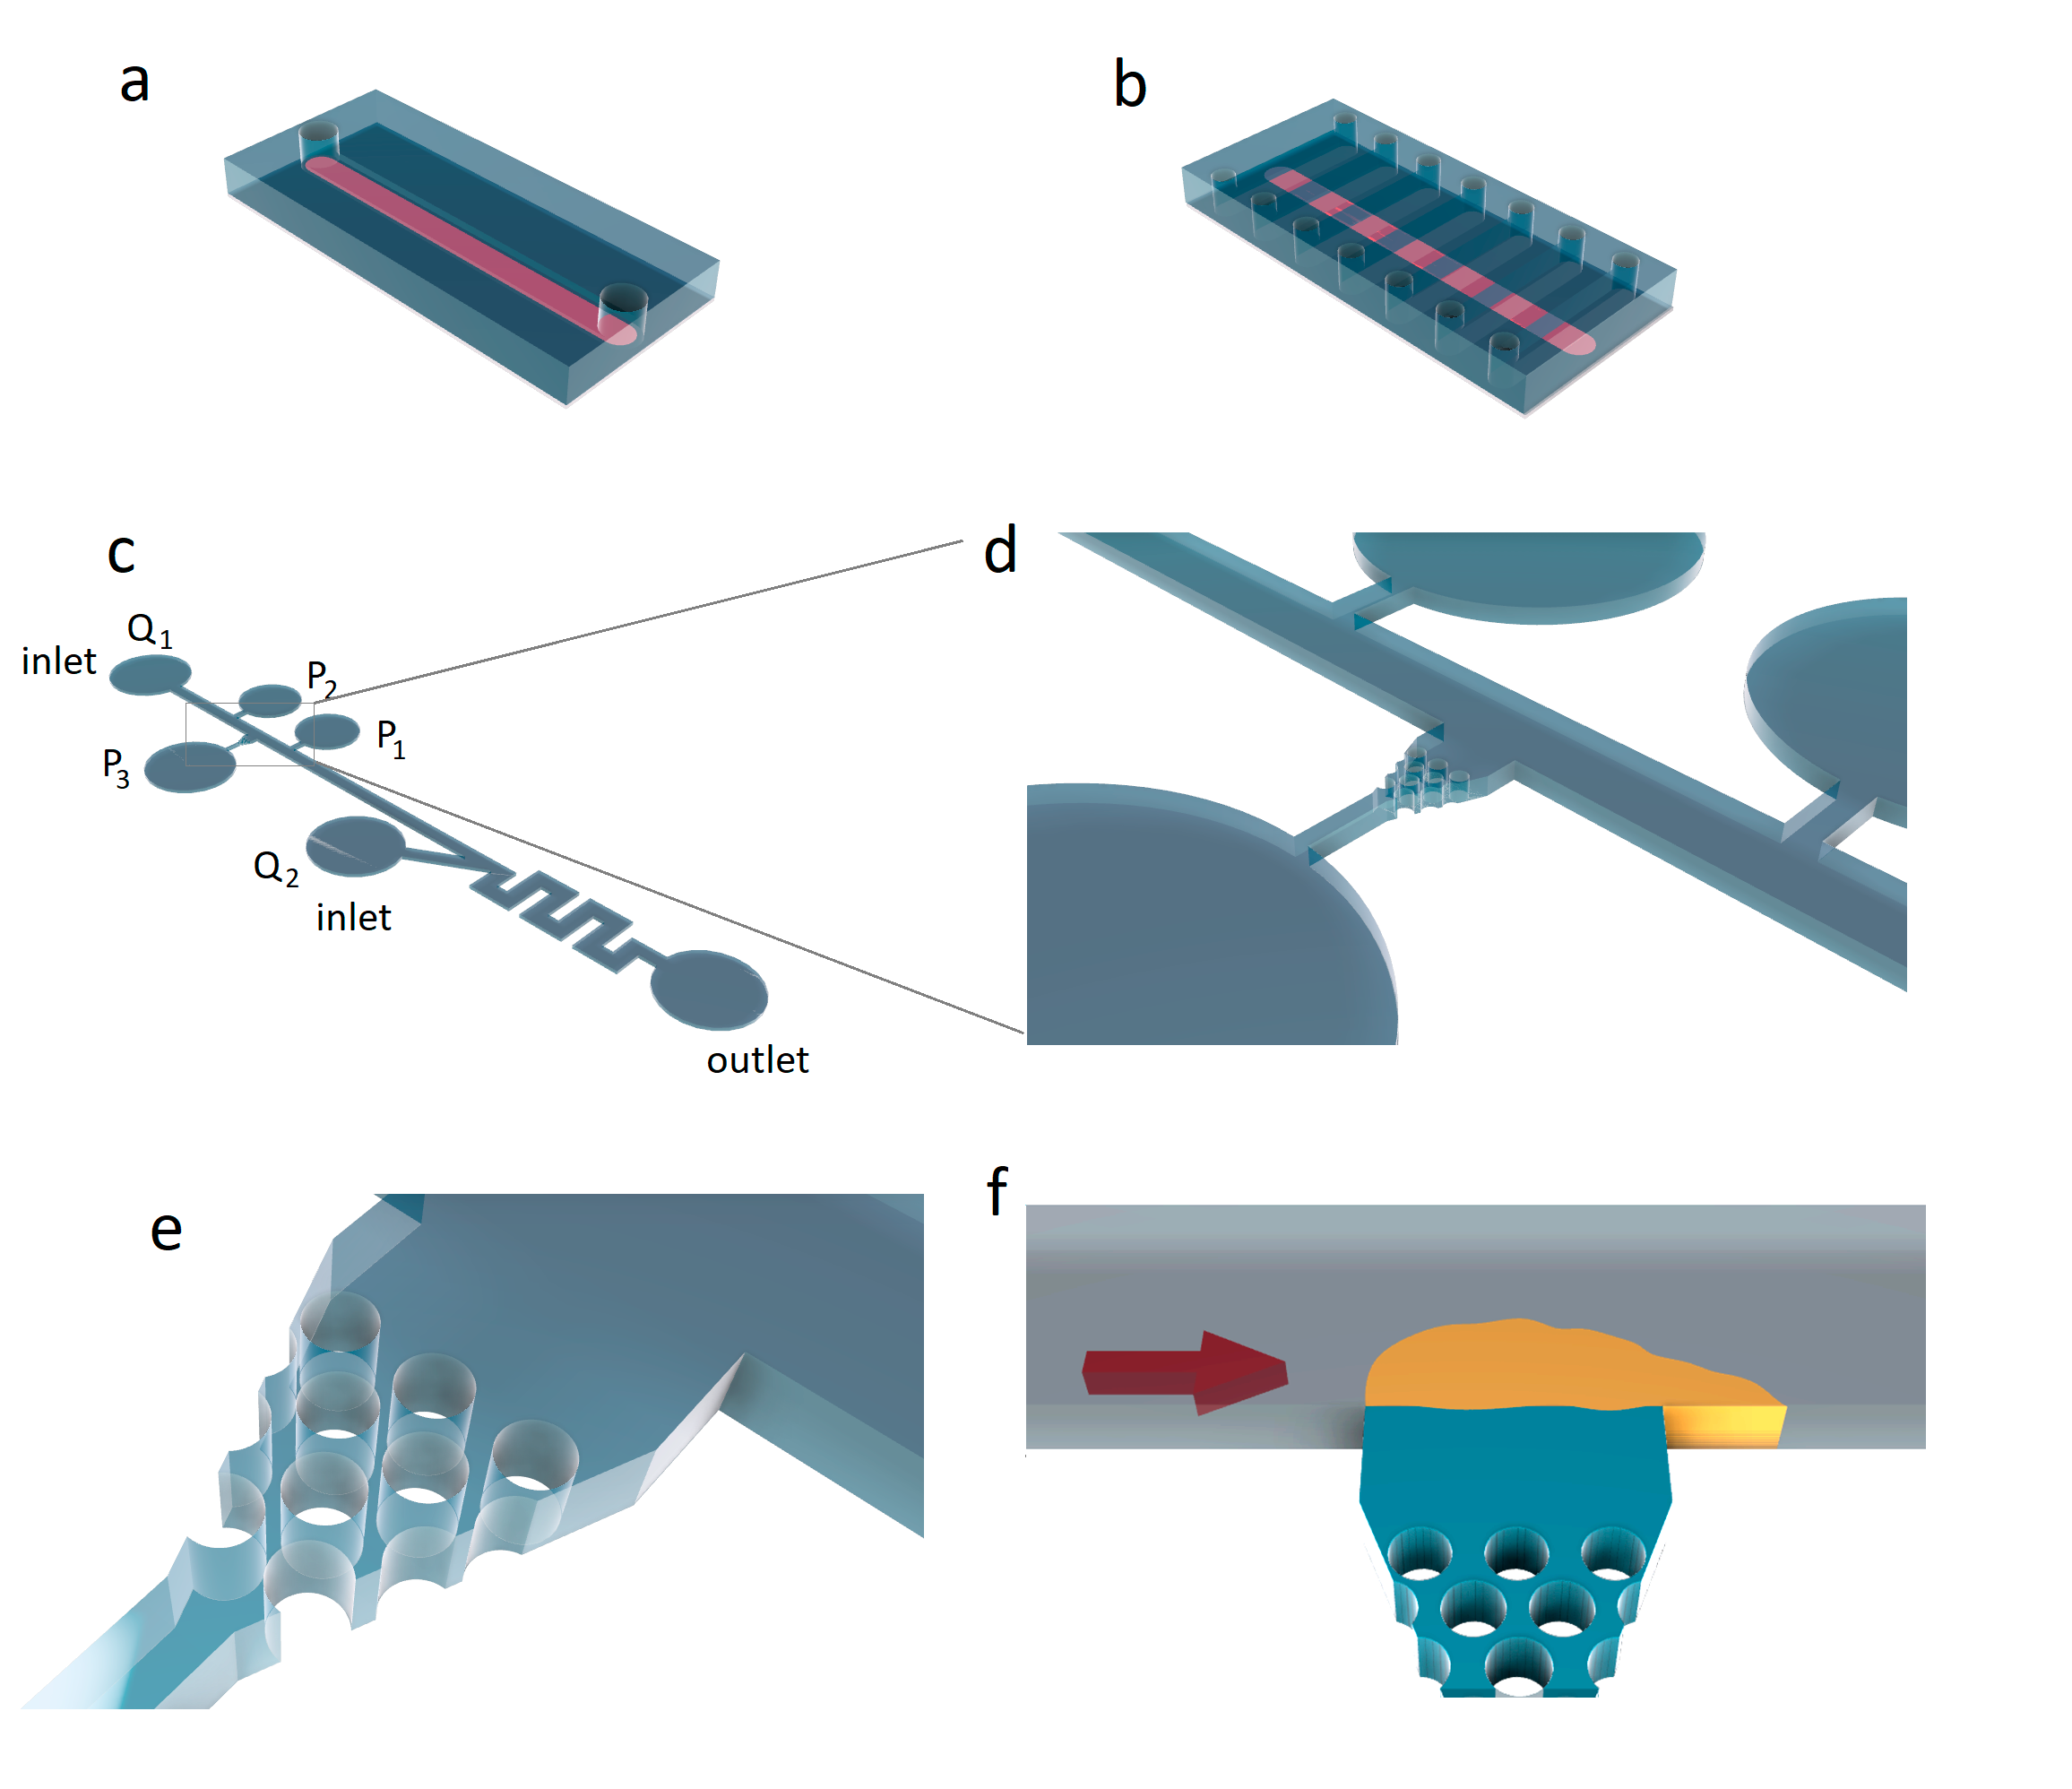 Microfluidic devices for analysis of thrombus formation under controlled shear. a) A 100 μm strip of collagen (red) was deposited and immobilized with a microfluidic pattern along the length of the slide. b) A microfluidic device with a set of channels was oriented perpendicular to the collagen pattern (red). Adapted from [7]. с-e) Microfluidic device with adjustable pressure gradients. The constant flow rate Q1 was provided by the syringe pump. The presence of pressure transducers (P1, P2 and P3) and additional inlet Q2 allowed controllable pressure gradient in the thrombus formation zone (e,f). f) Thrombus (orange) was formed on a collagen (blue) located between the PDMS pillars (white circles). Adapted from [8].